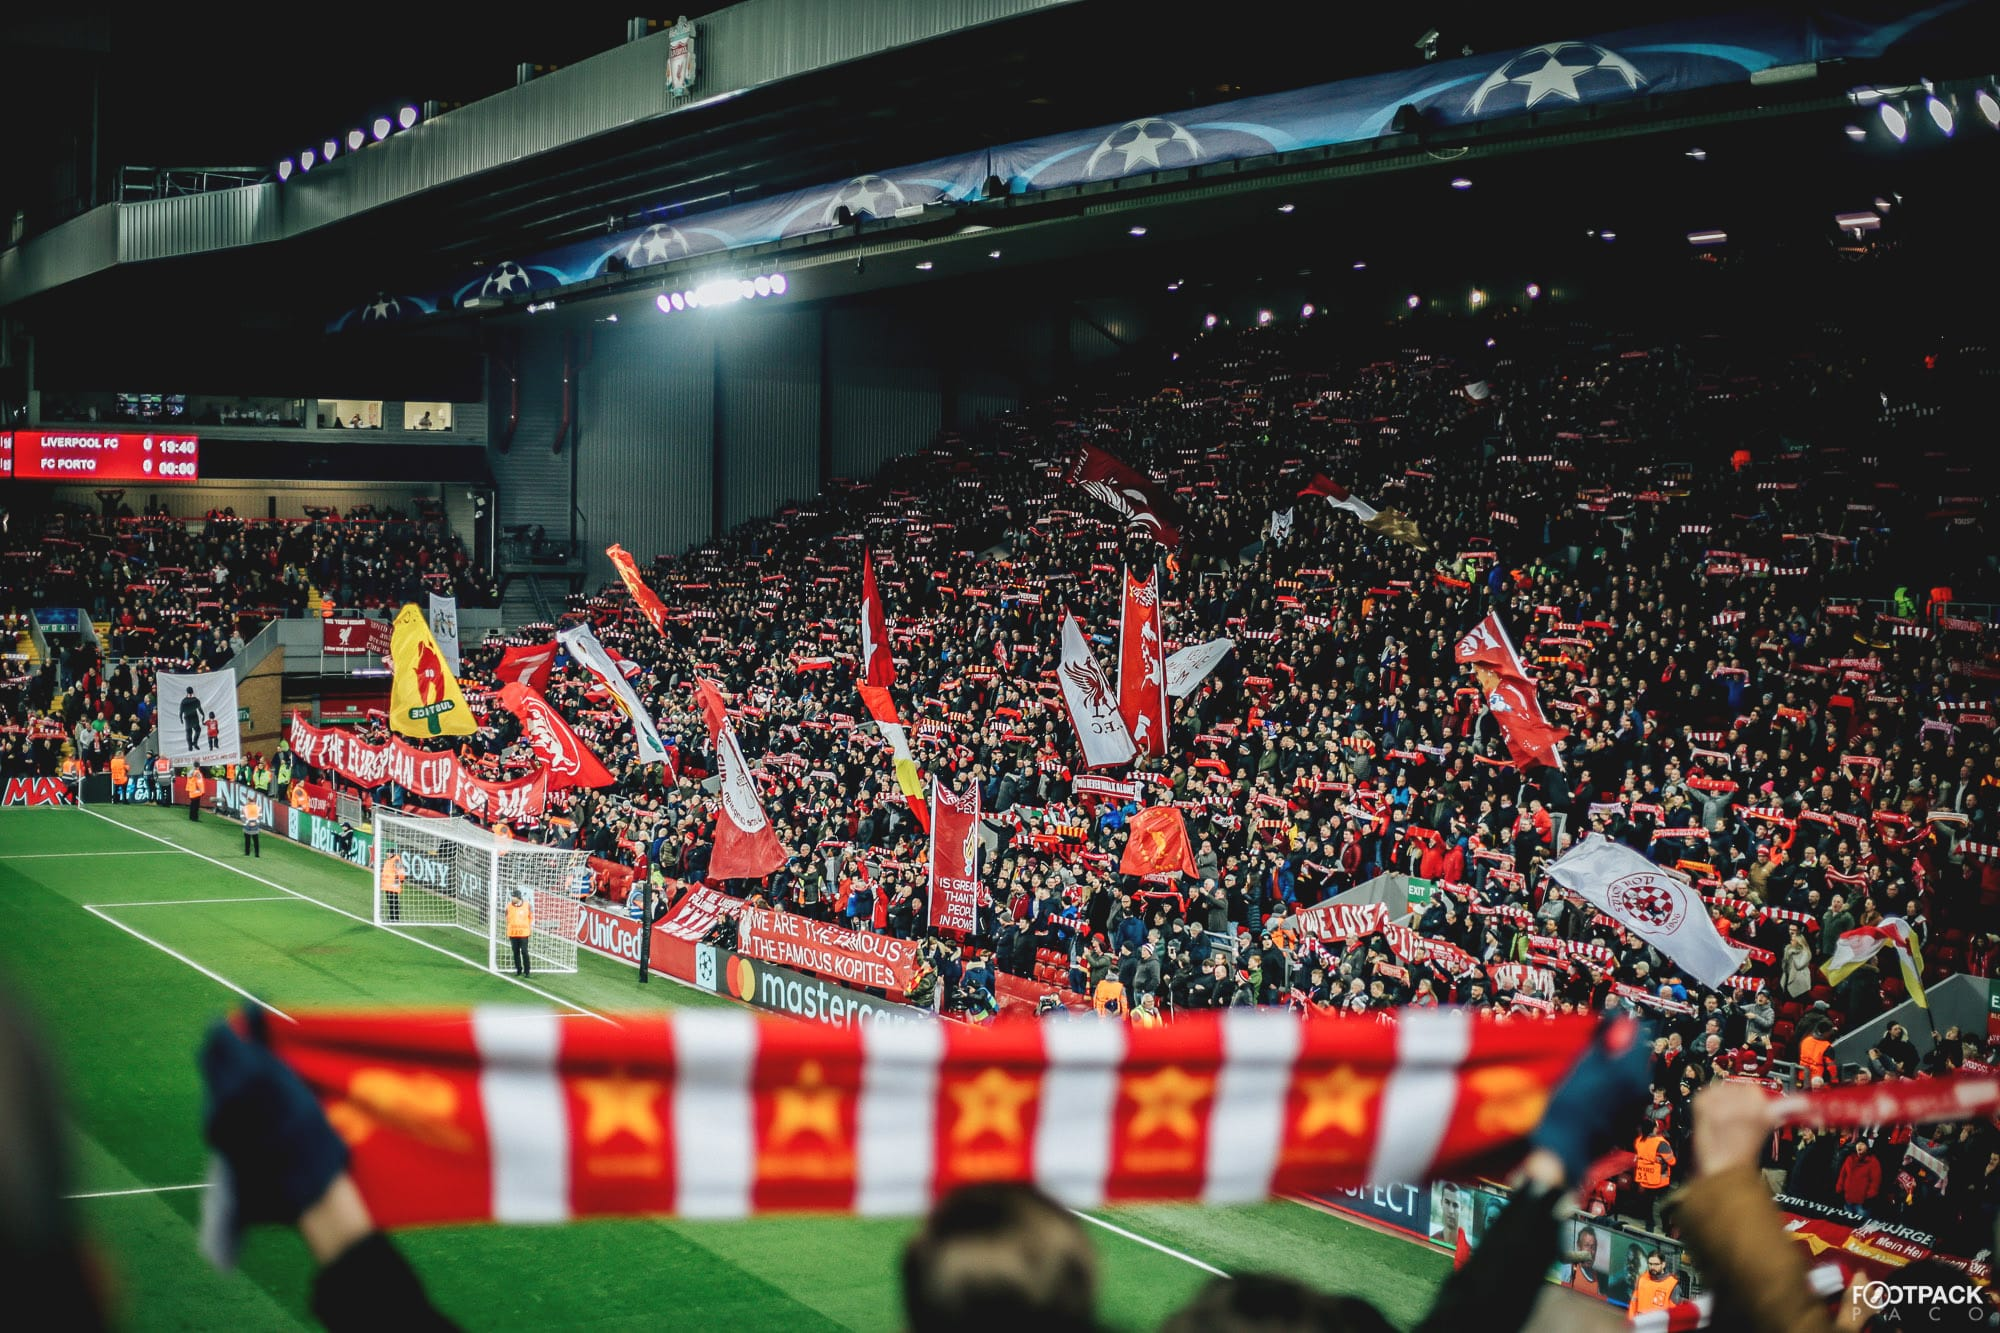 https://www.footpack.fr/wp-content/uploads/2018/12/kop-liverpool-top-50-photos-footpack.jpg